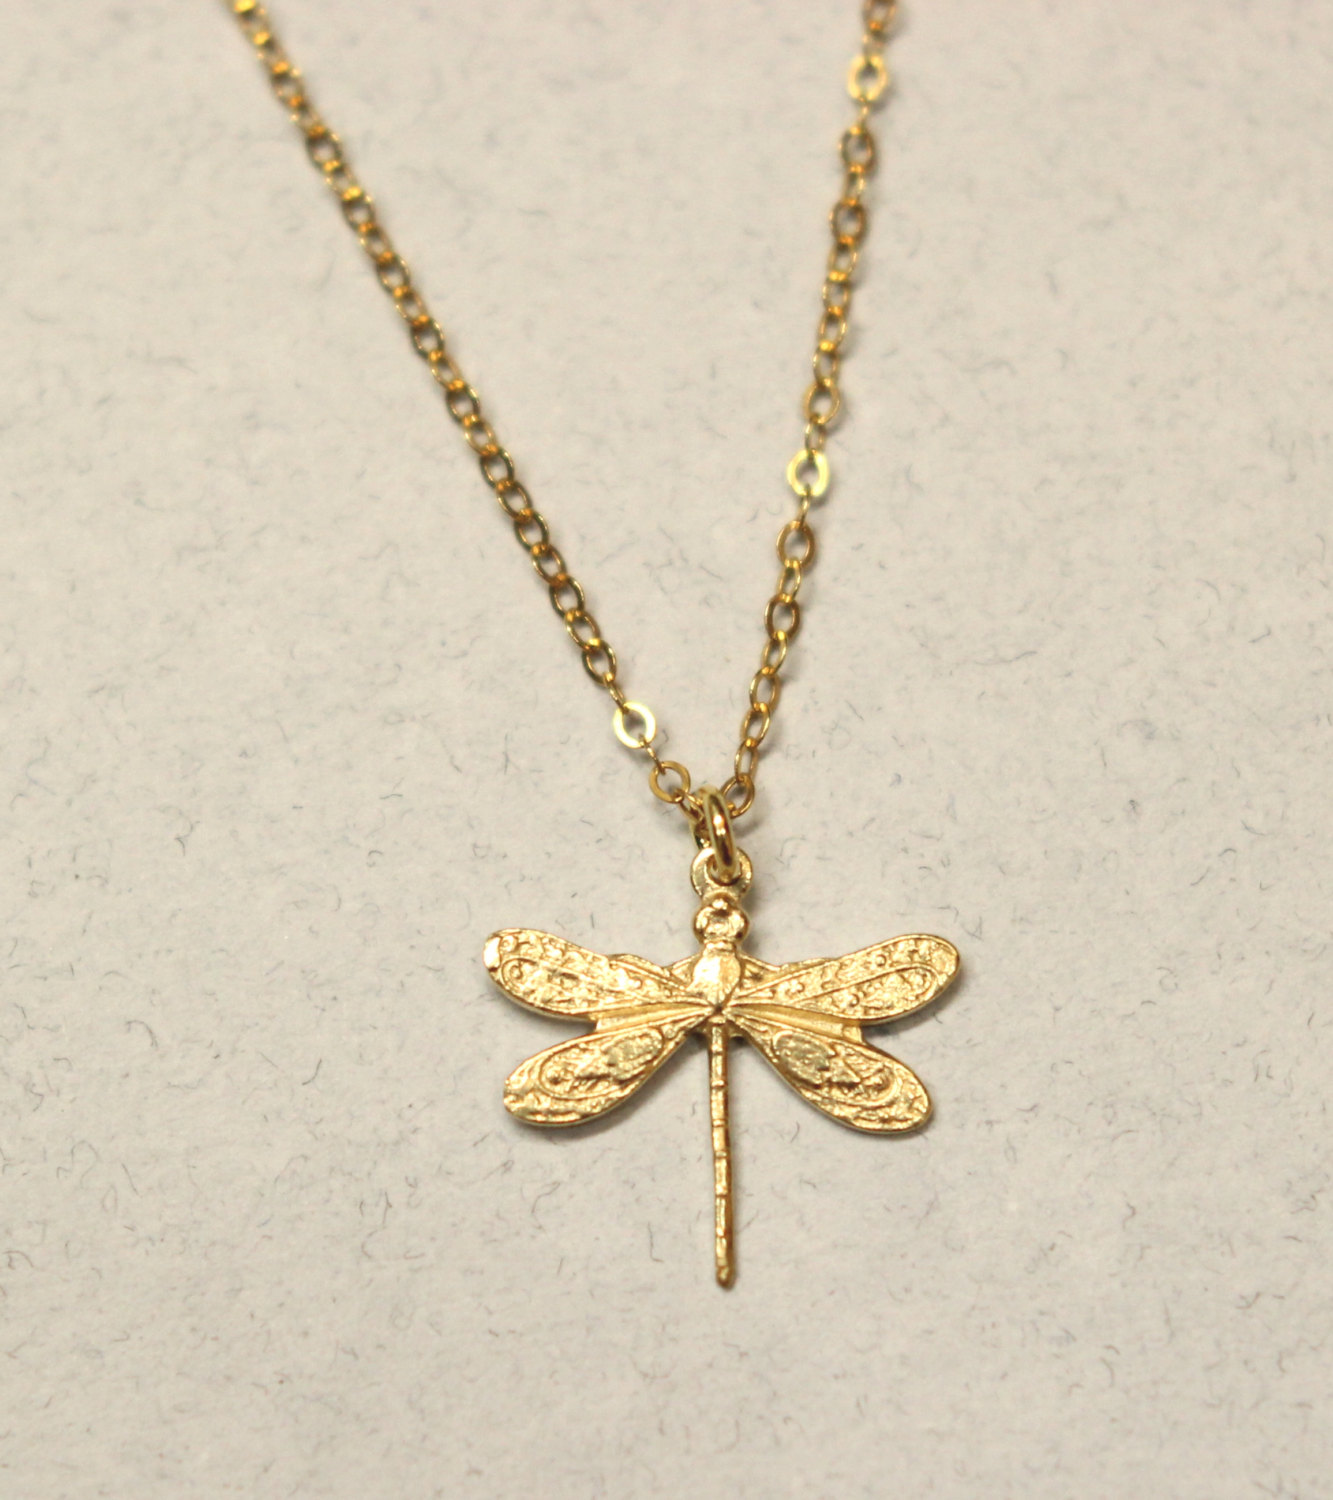 yellow overstock italian today free gold watches jewelry product necklace inches shipping dragonfly pendant fremada